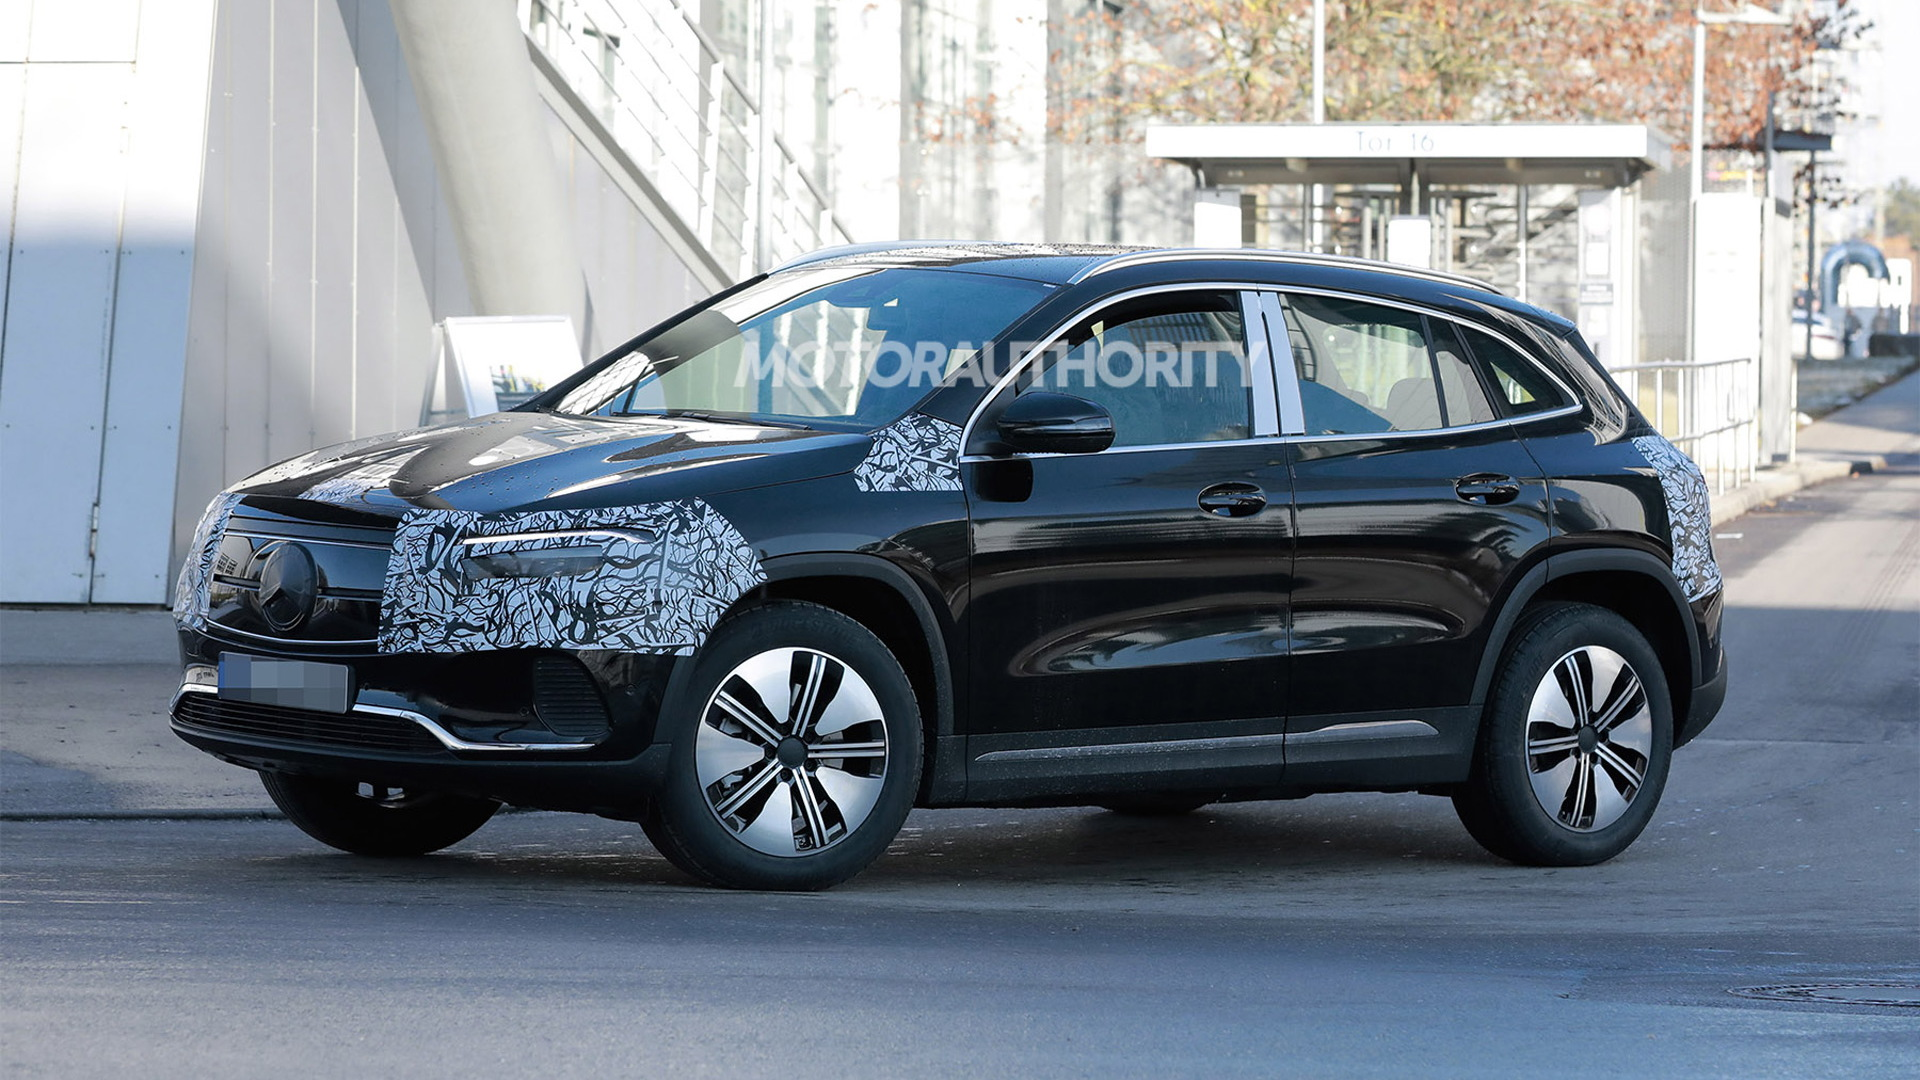 2022 Mercedes-Benz EQA spy shots - Photo credit: S. Baldauf/SB-Medien